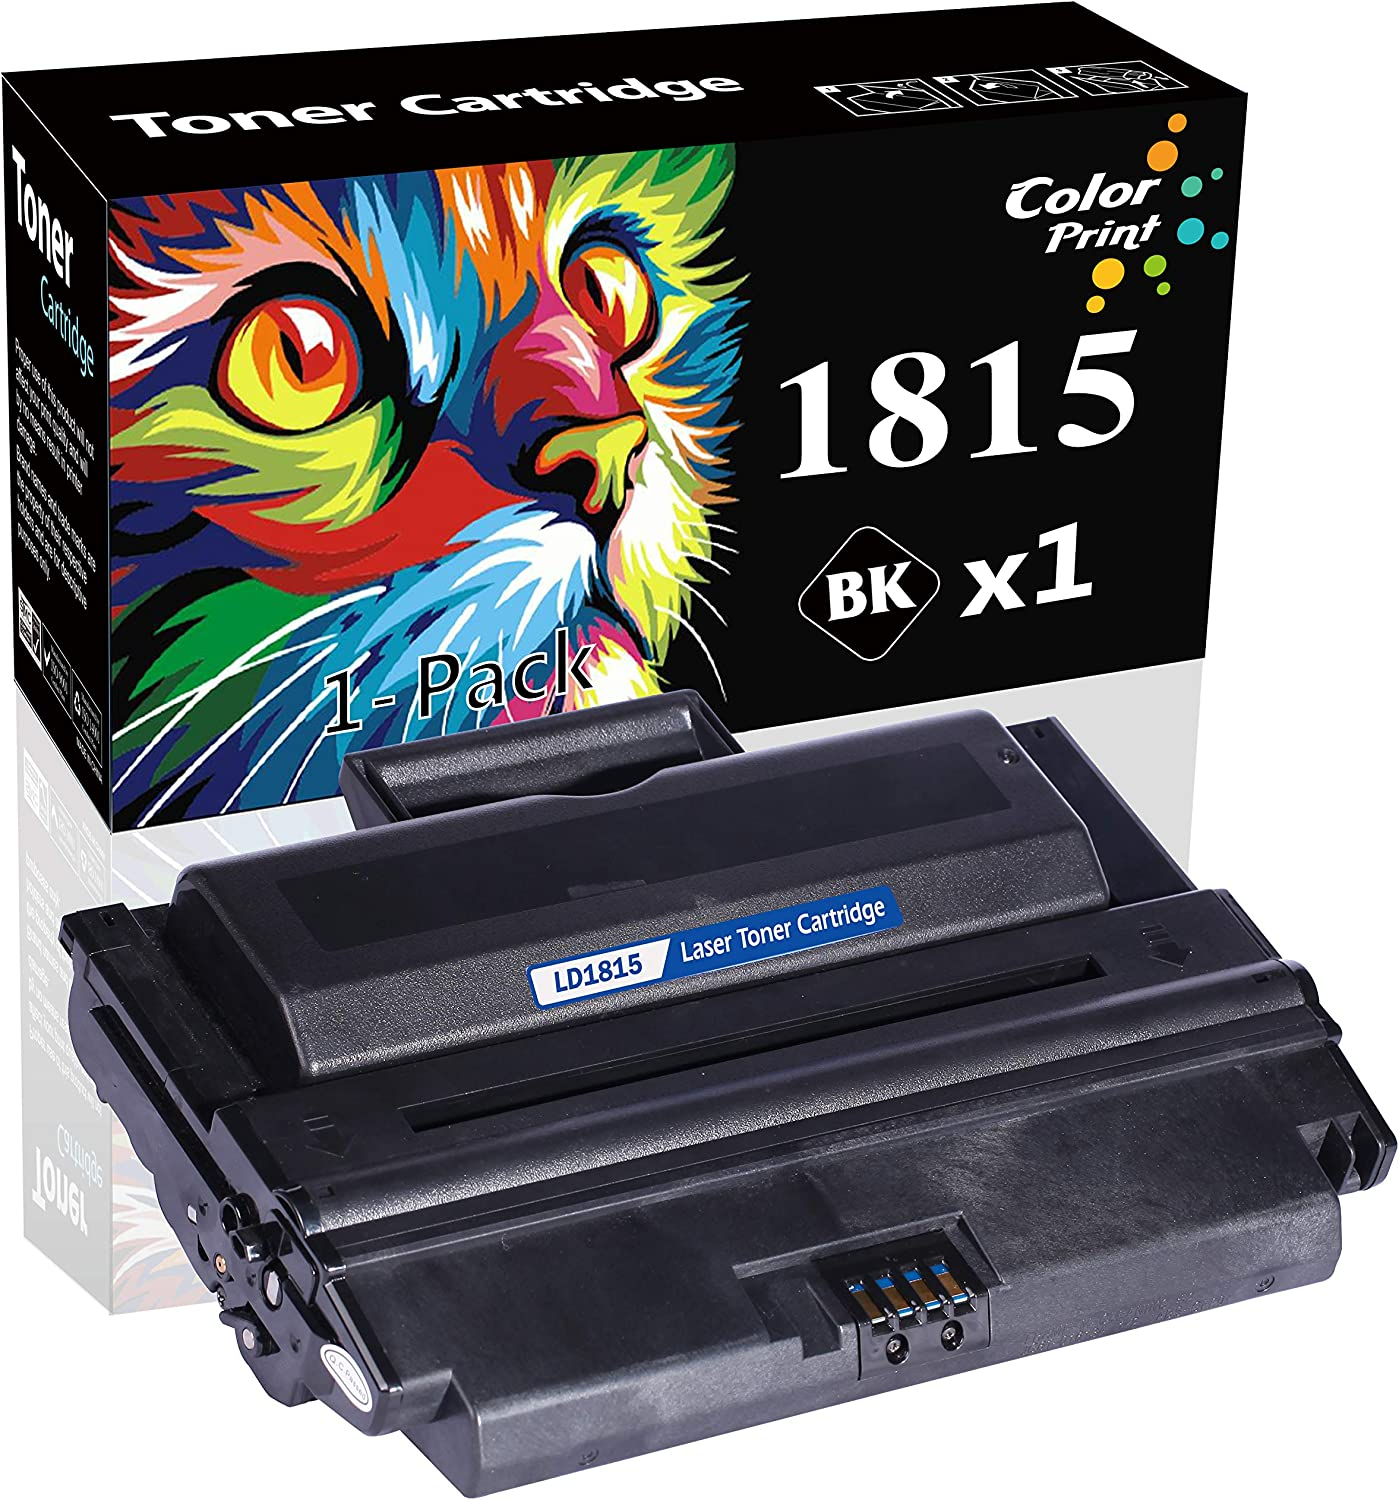 1-Pack ColorPrint Compatible Toner Cartridge Replacement for Dell 1815DN 1815 Used for 310-7943 NF485 0PF658 RF223 PF656 310-7945 Printer (Black, 5,000 Pages)